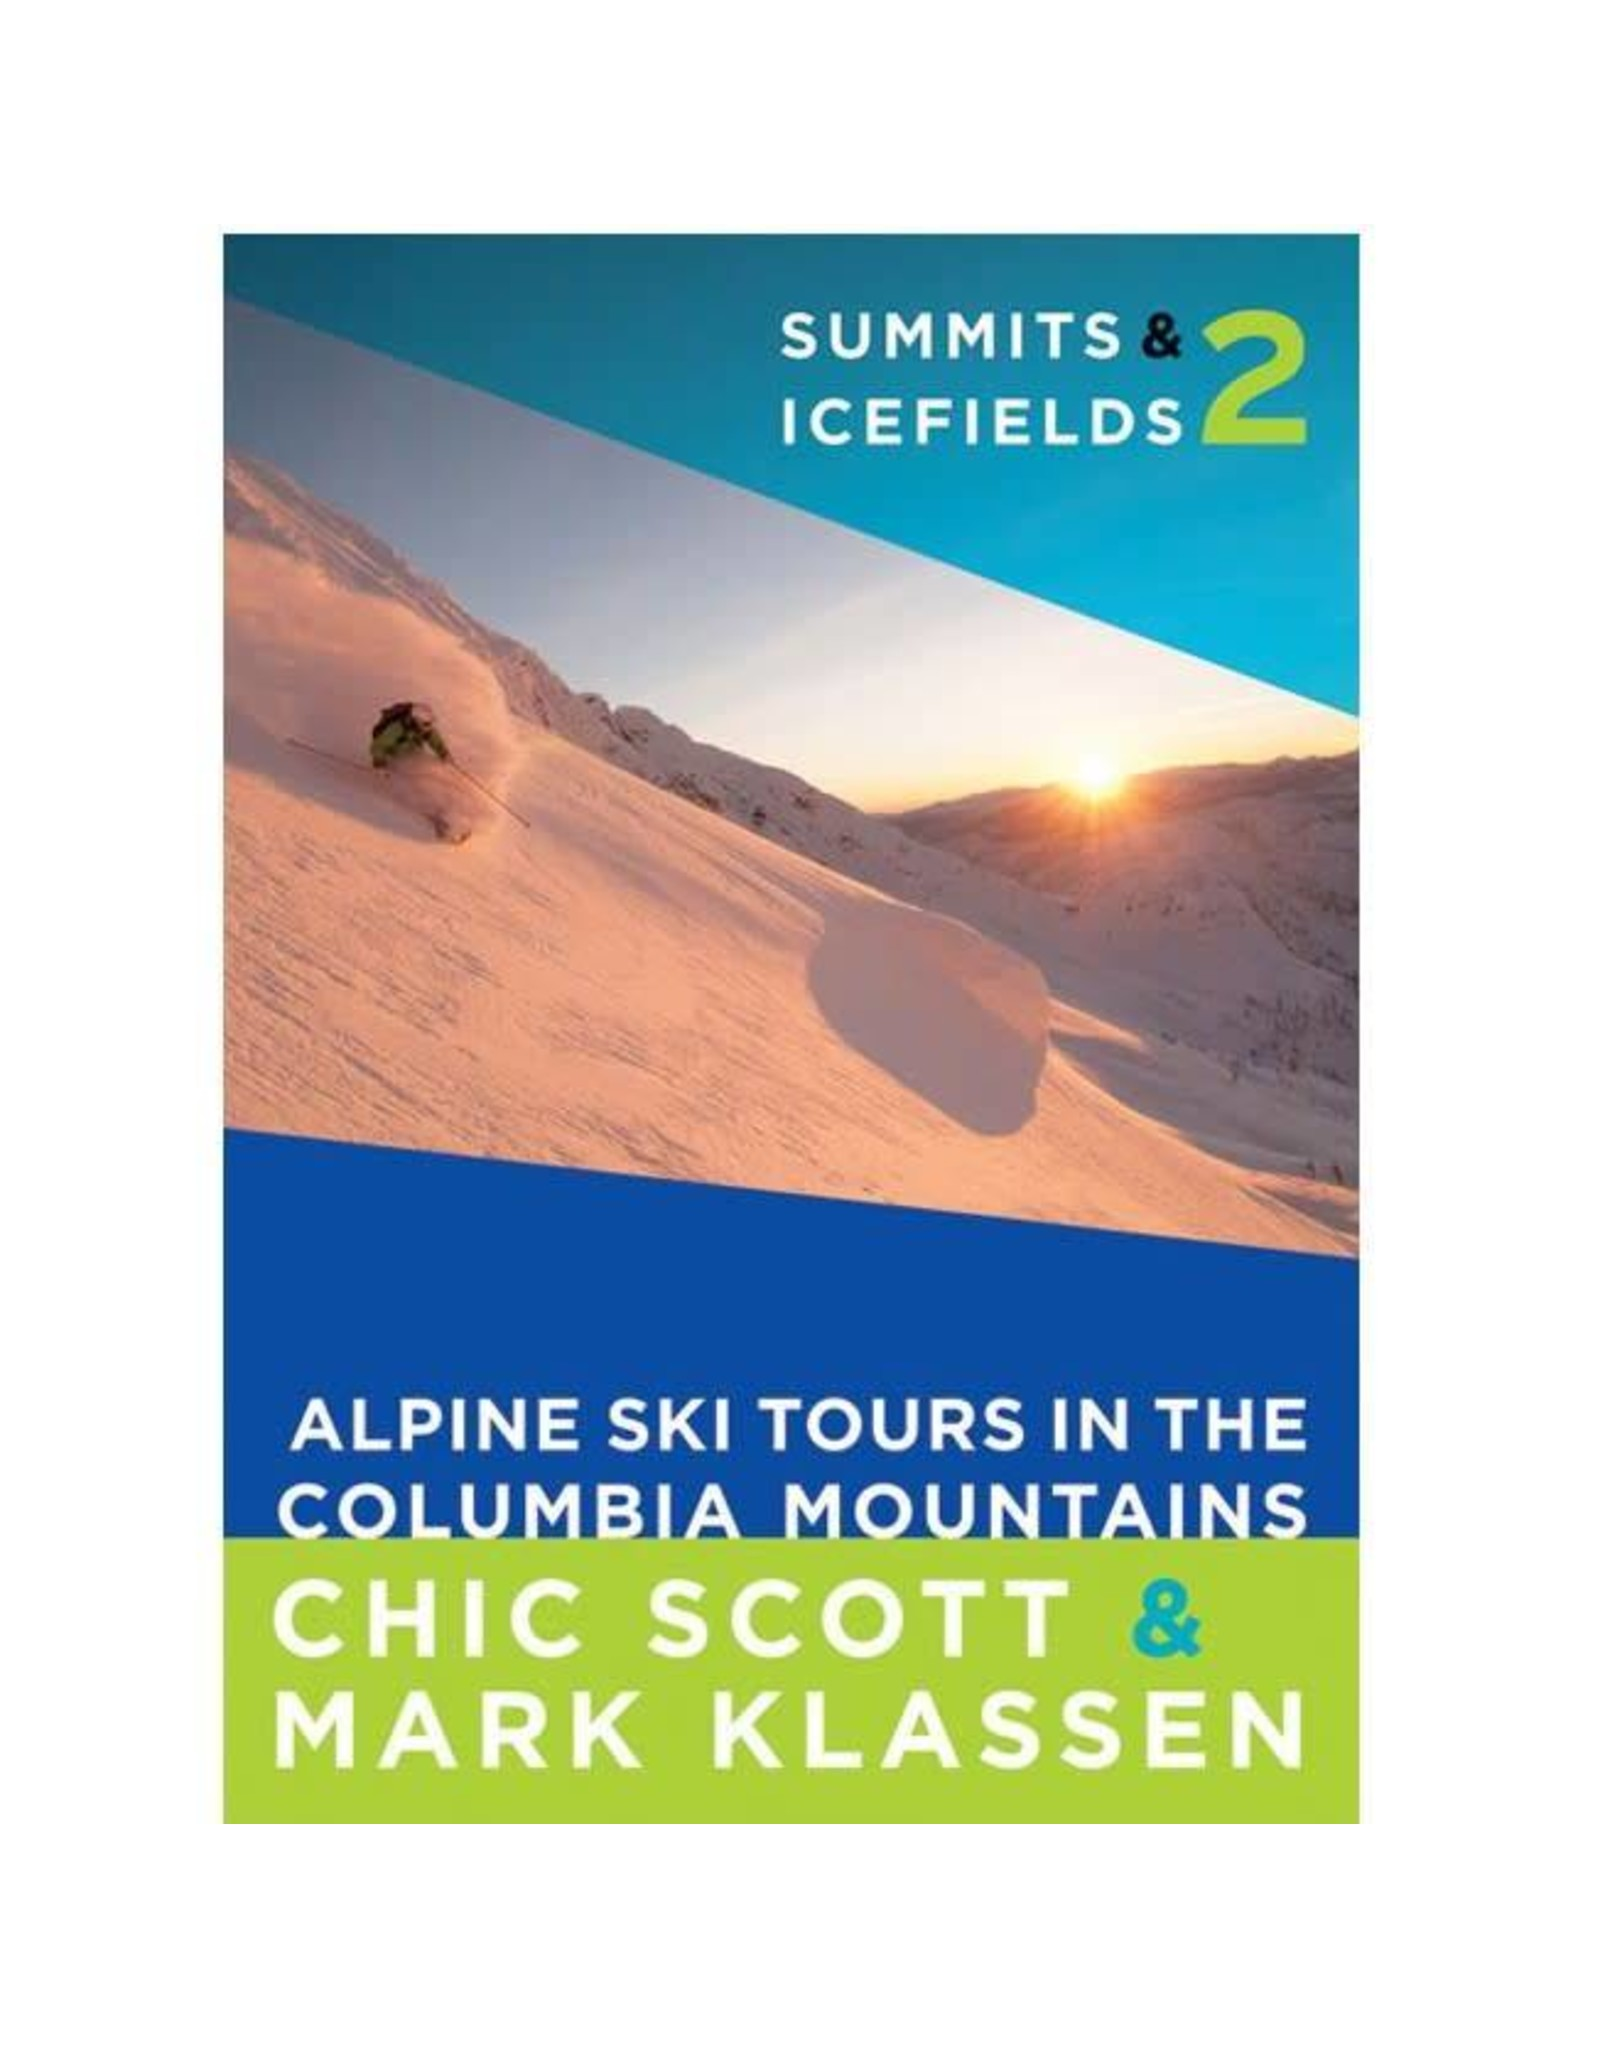 Summits & Icefields 2 - Alpine Ski Tours in the Columbia Mountains